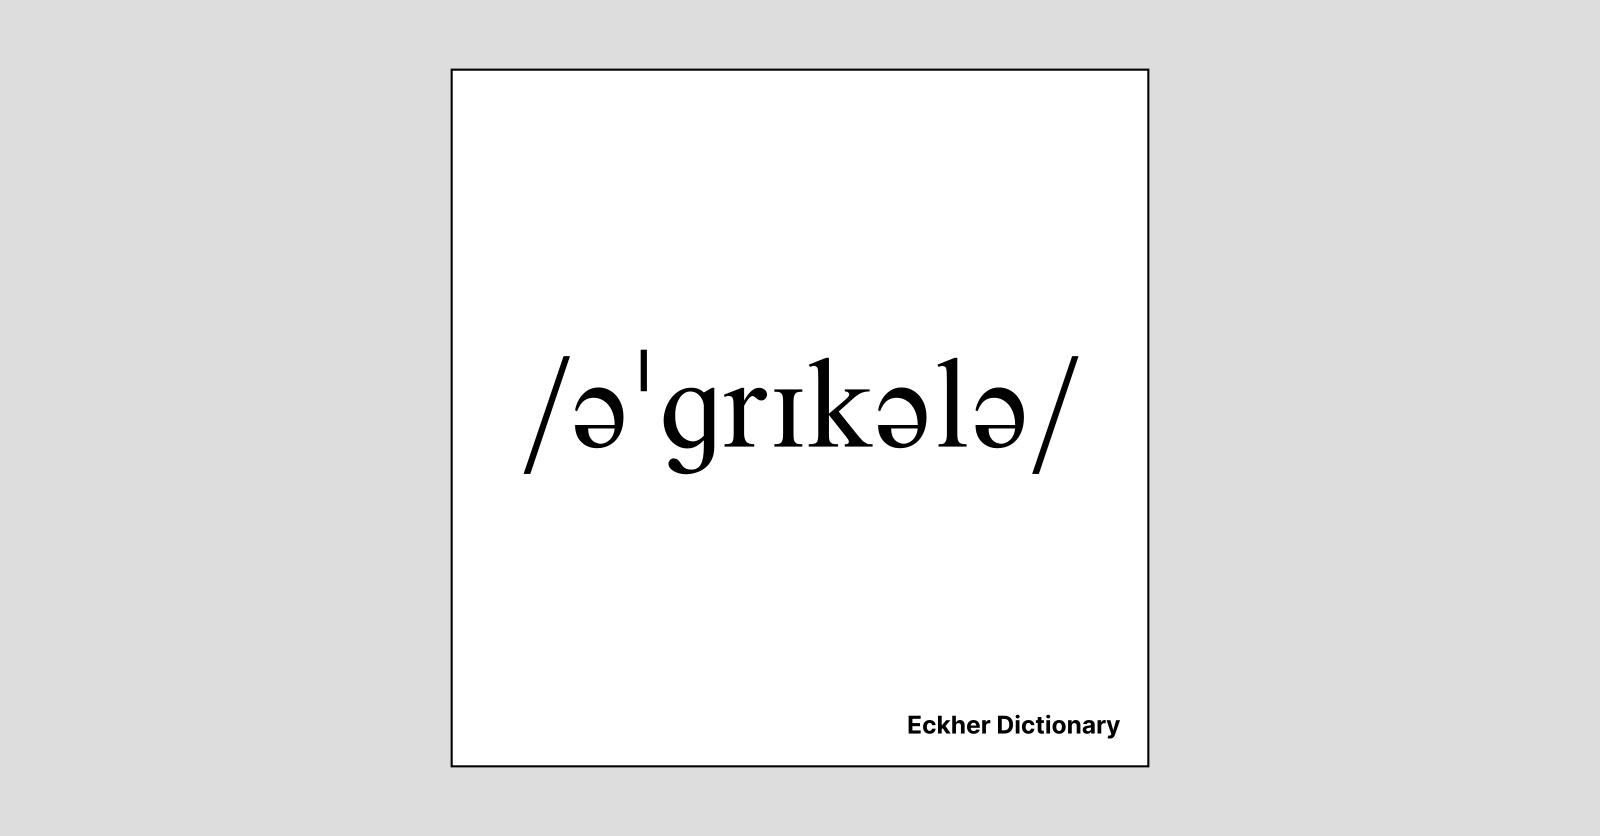 Agricola - Eckher Dictionary